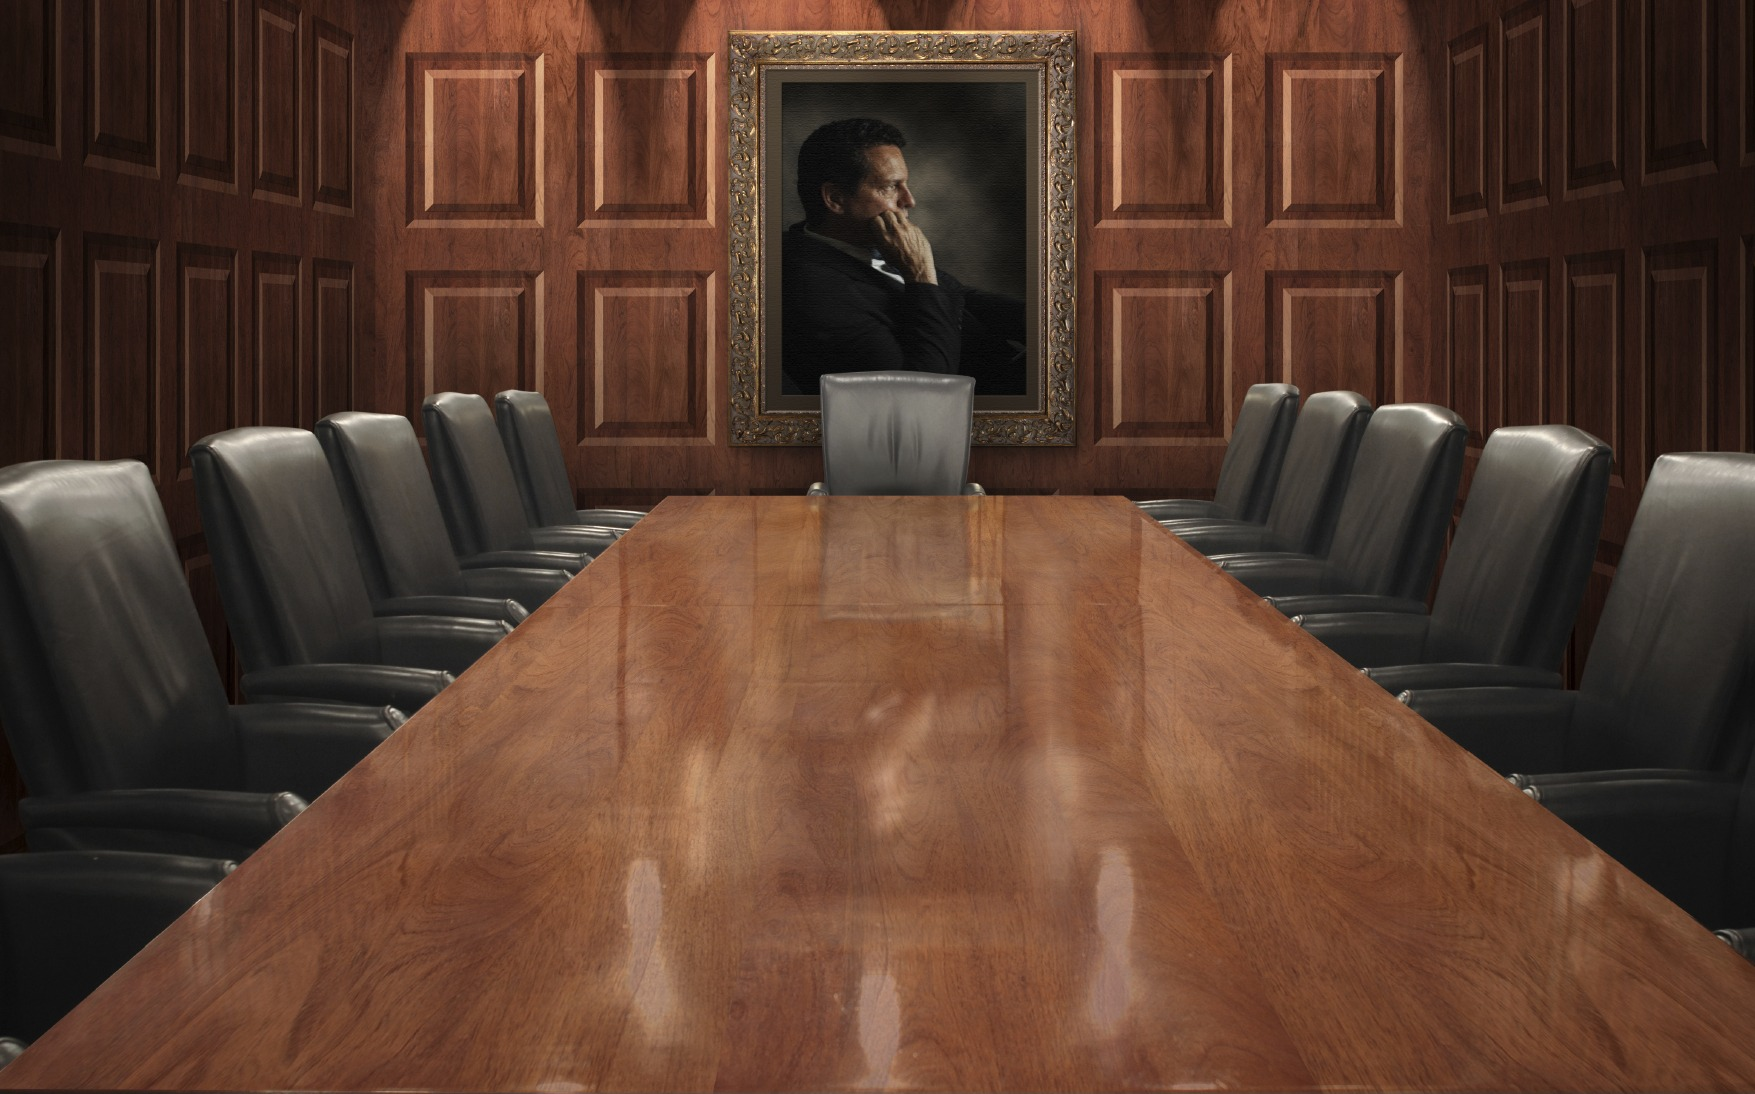 The Boardroom Still Has a Glass Ceiling